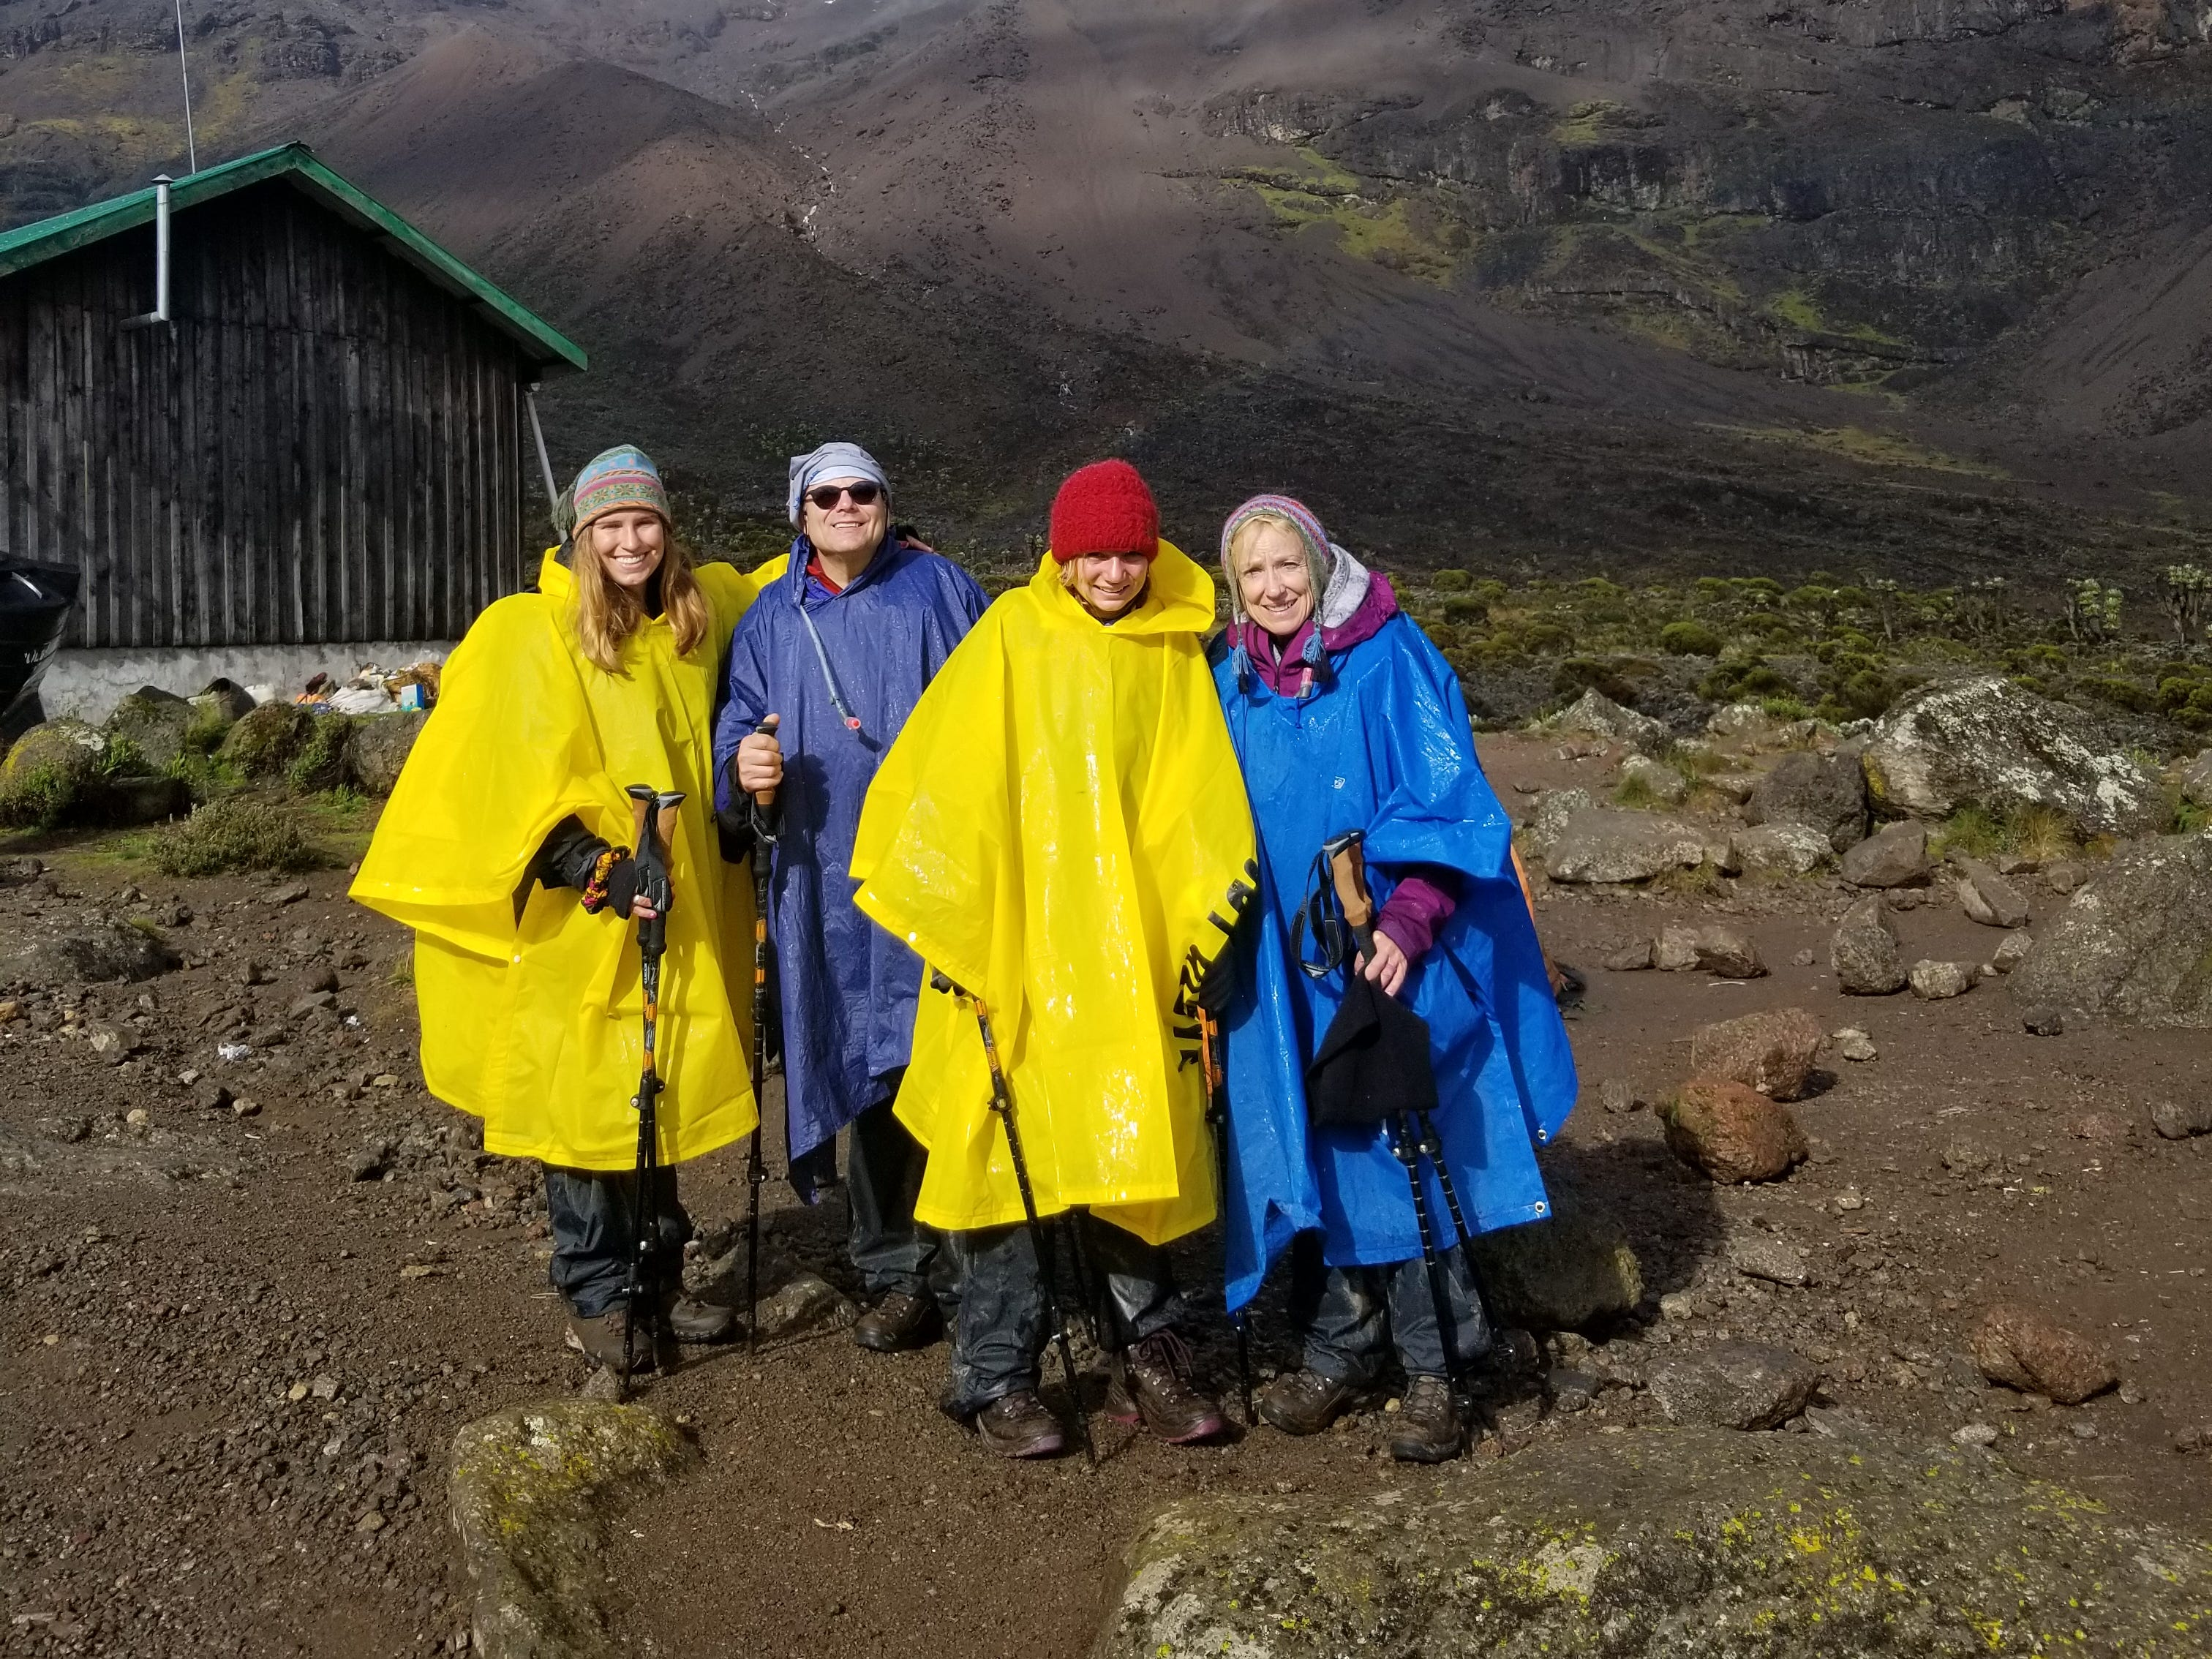 The sun comes out, briefly while Elliott, John and  Jordan Grantz and Kirby Adams-Grantz trek Mount Kilimanjaro